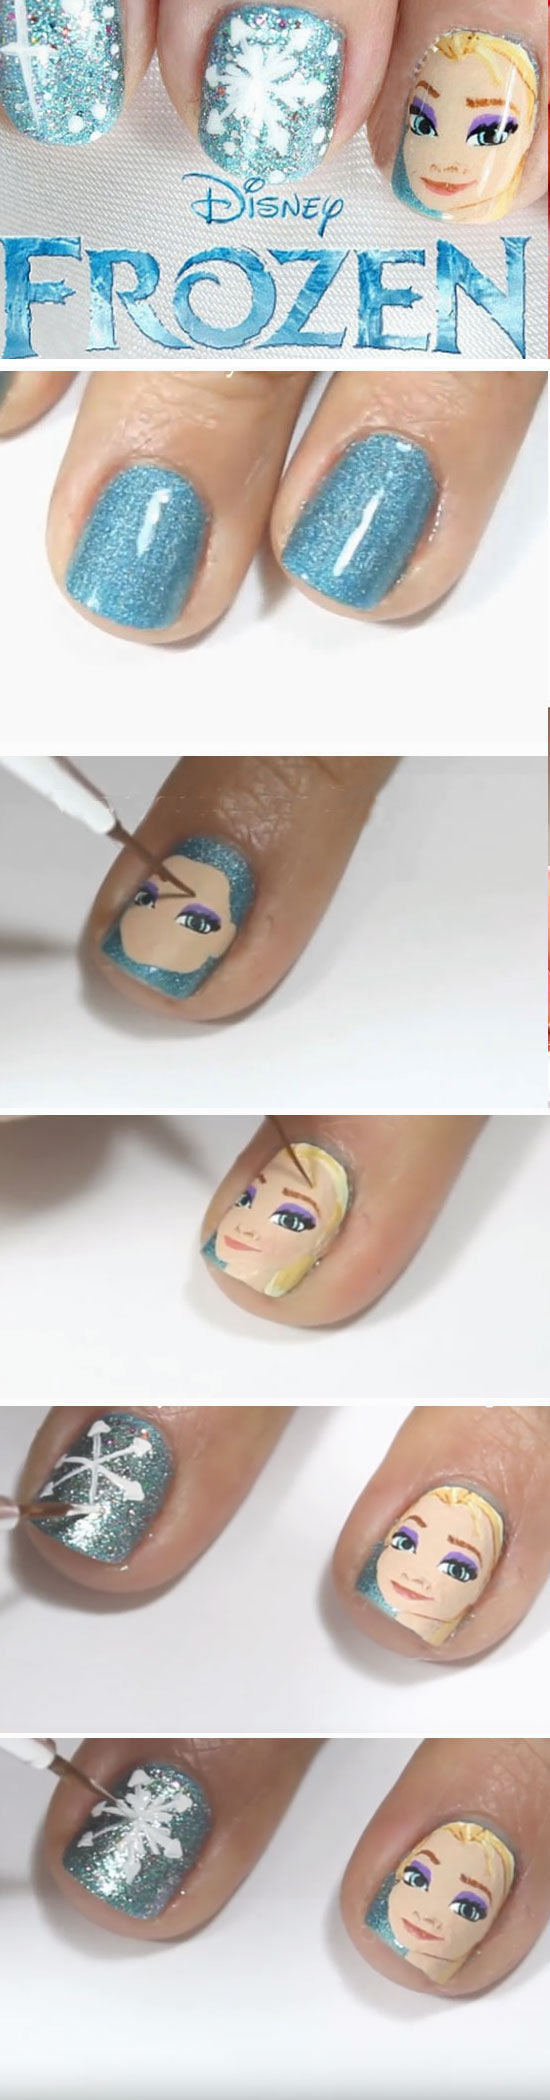 Frozen Nail Art Pictures, Photos, and Images for Facebook, Tumblr ...